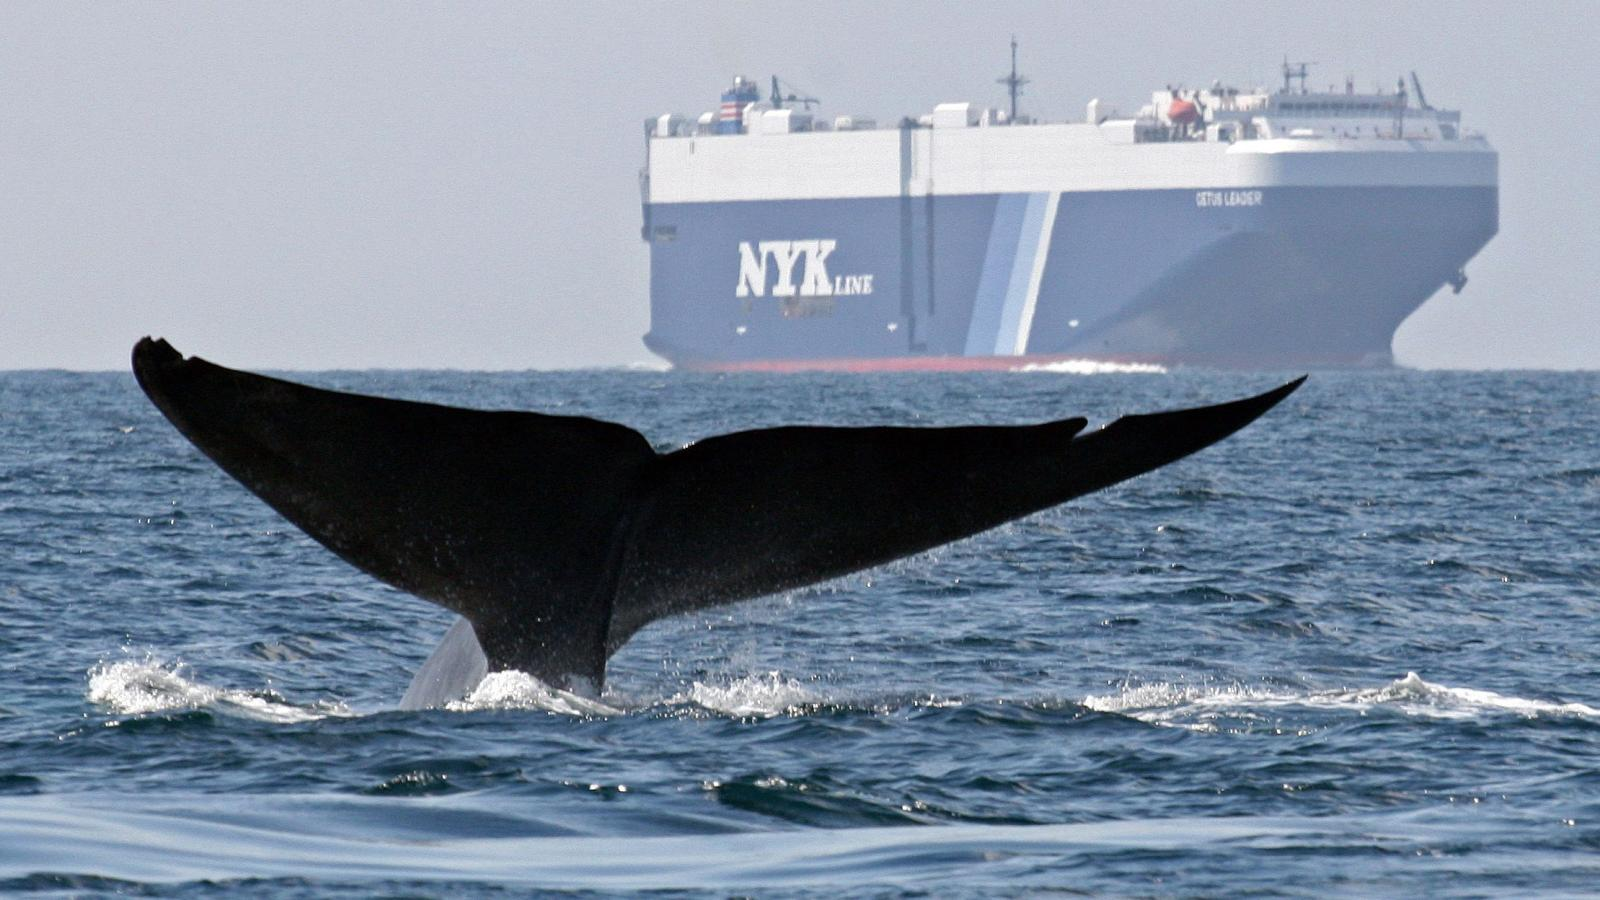 blue-whales-commercial-whaling-shipping-population-endangered-species-ocean-sea-whale-whaling-hunting-recovery